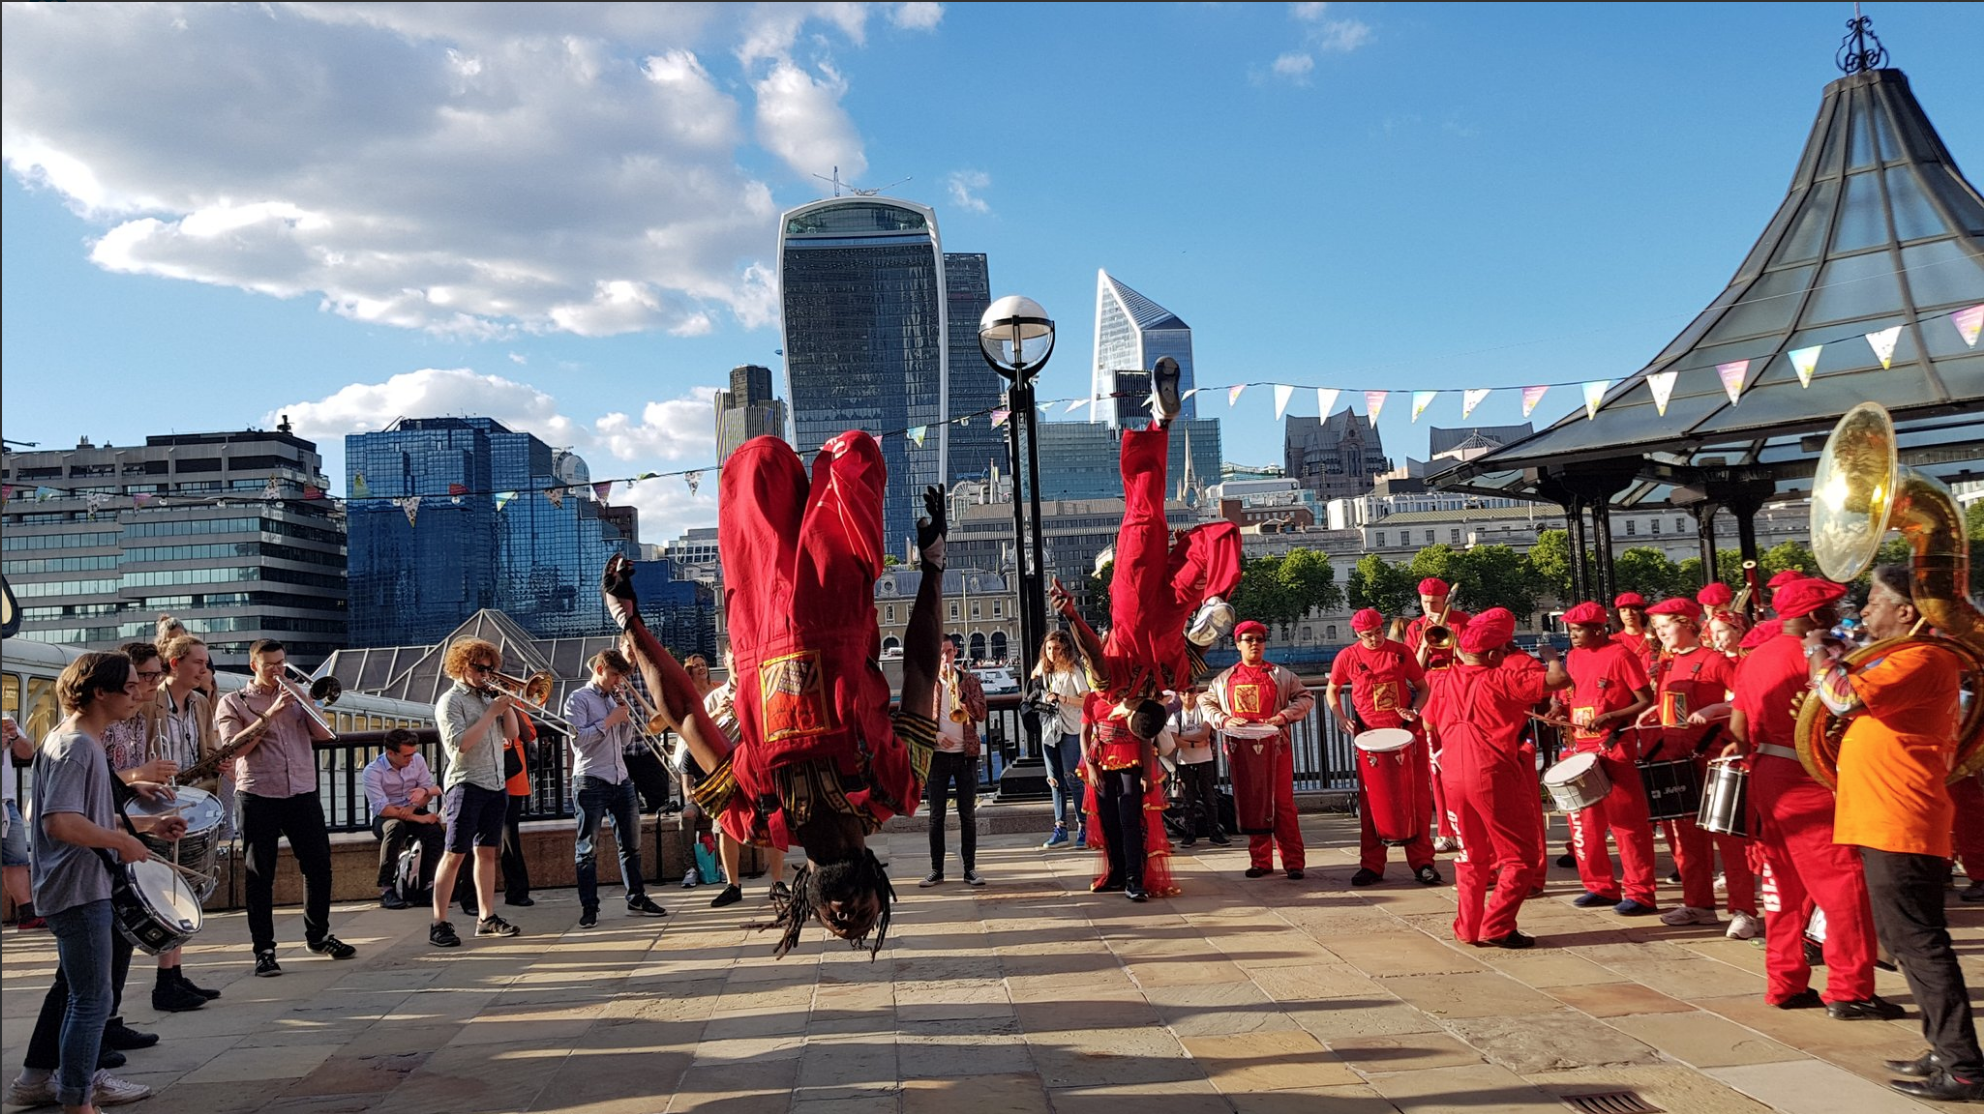 "Kinetika Bloco youth group and the Voodoo Brass Band of London in the NOLA Fest / Make Music Day UK ""2018 New Orleans Tricentennial Parade"" in Central London."